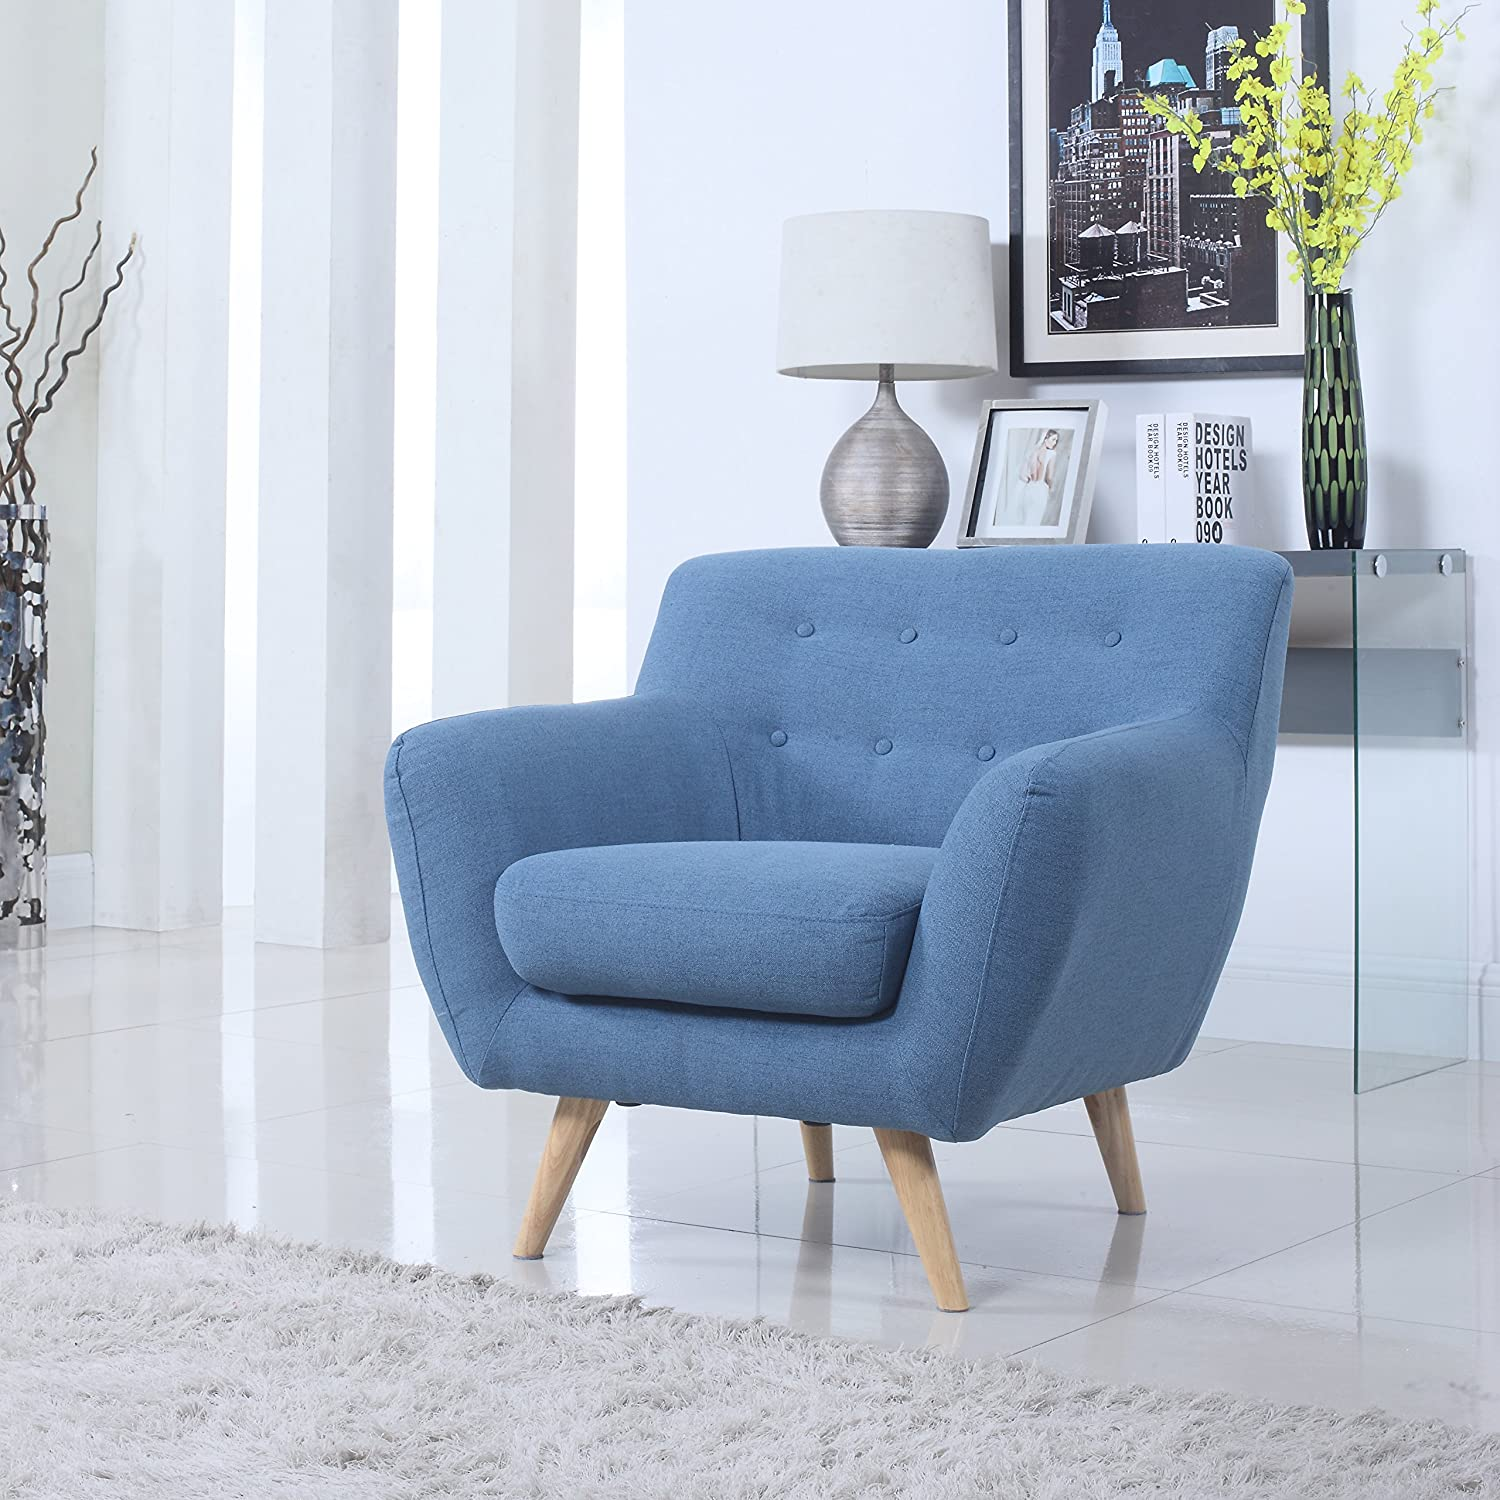 Blue Velvet Milo Baughmann Chairs - Contemporary - Living Room